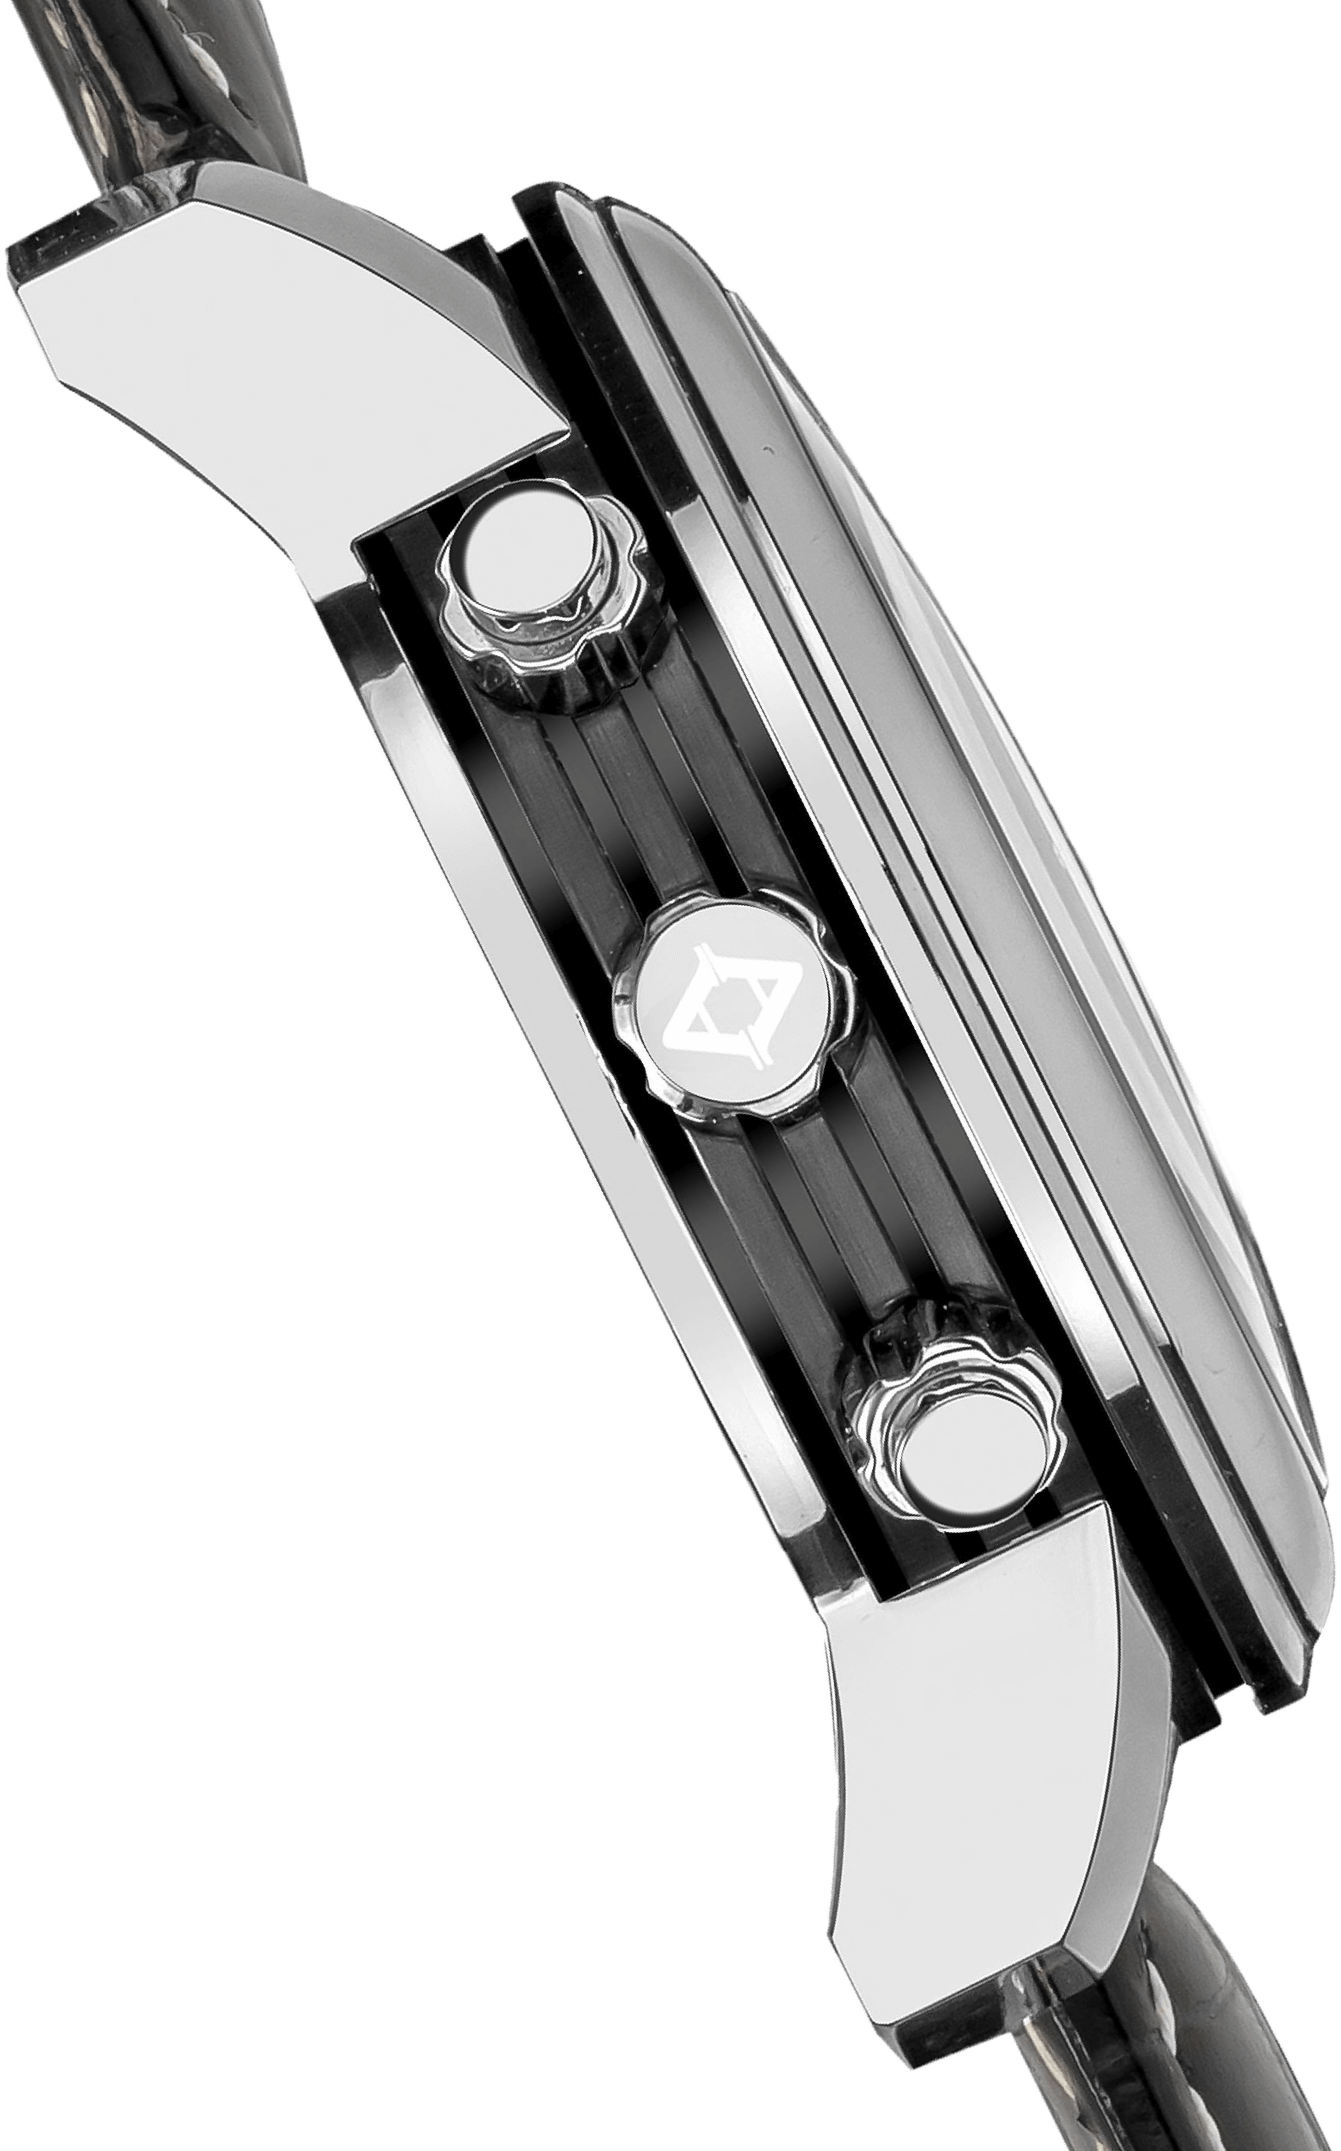 A side profile view of a chronograph watch